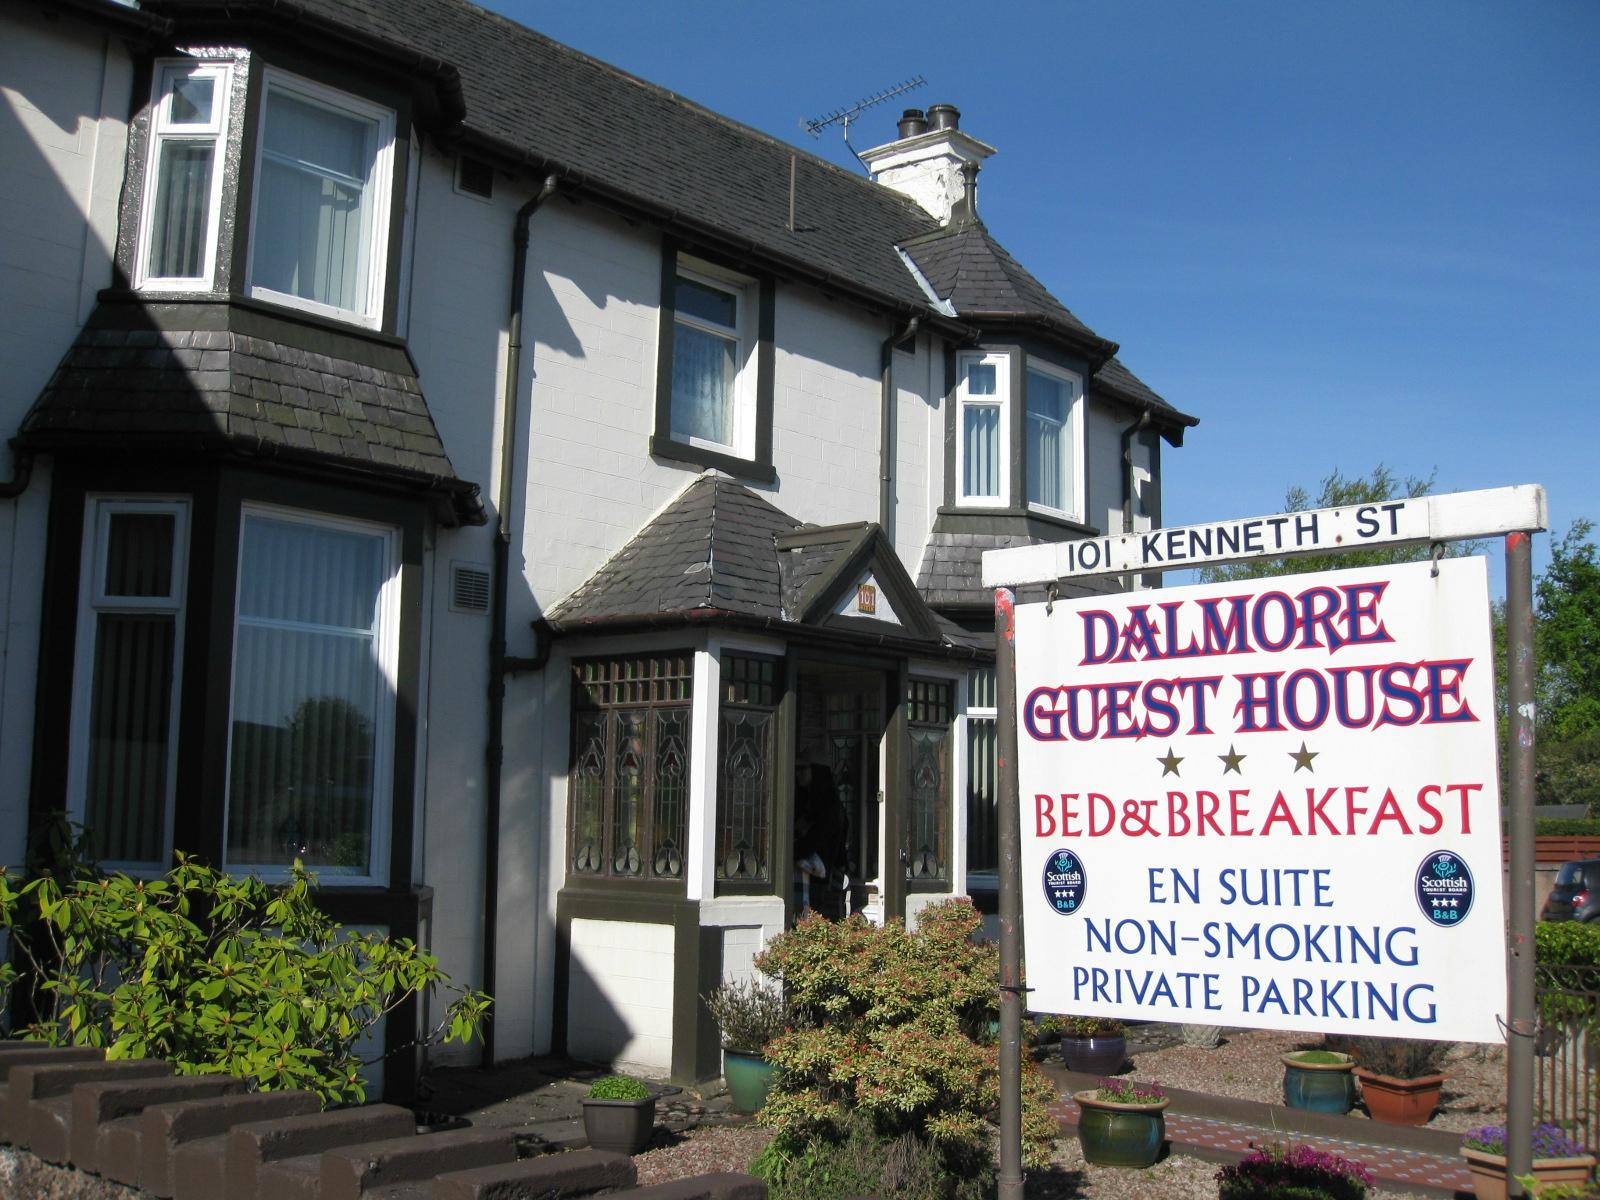 Dalmore Guest House